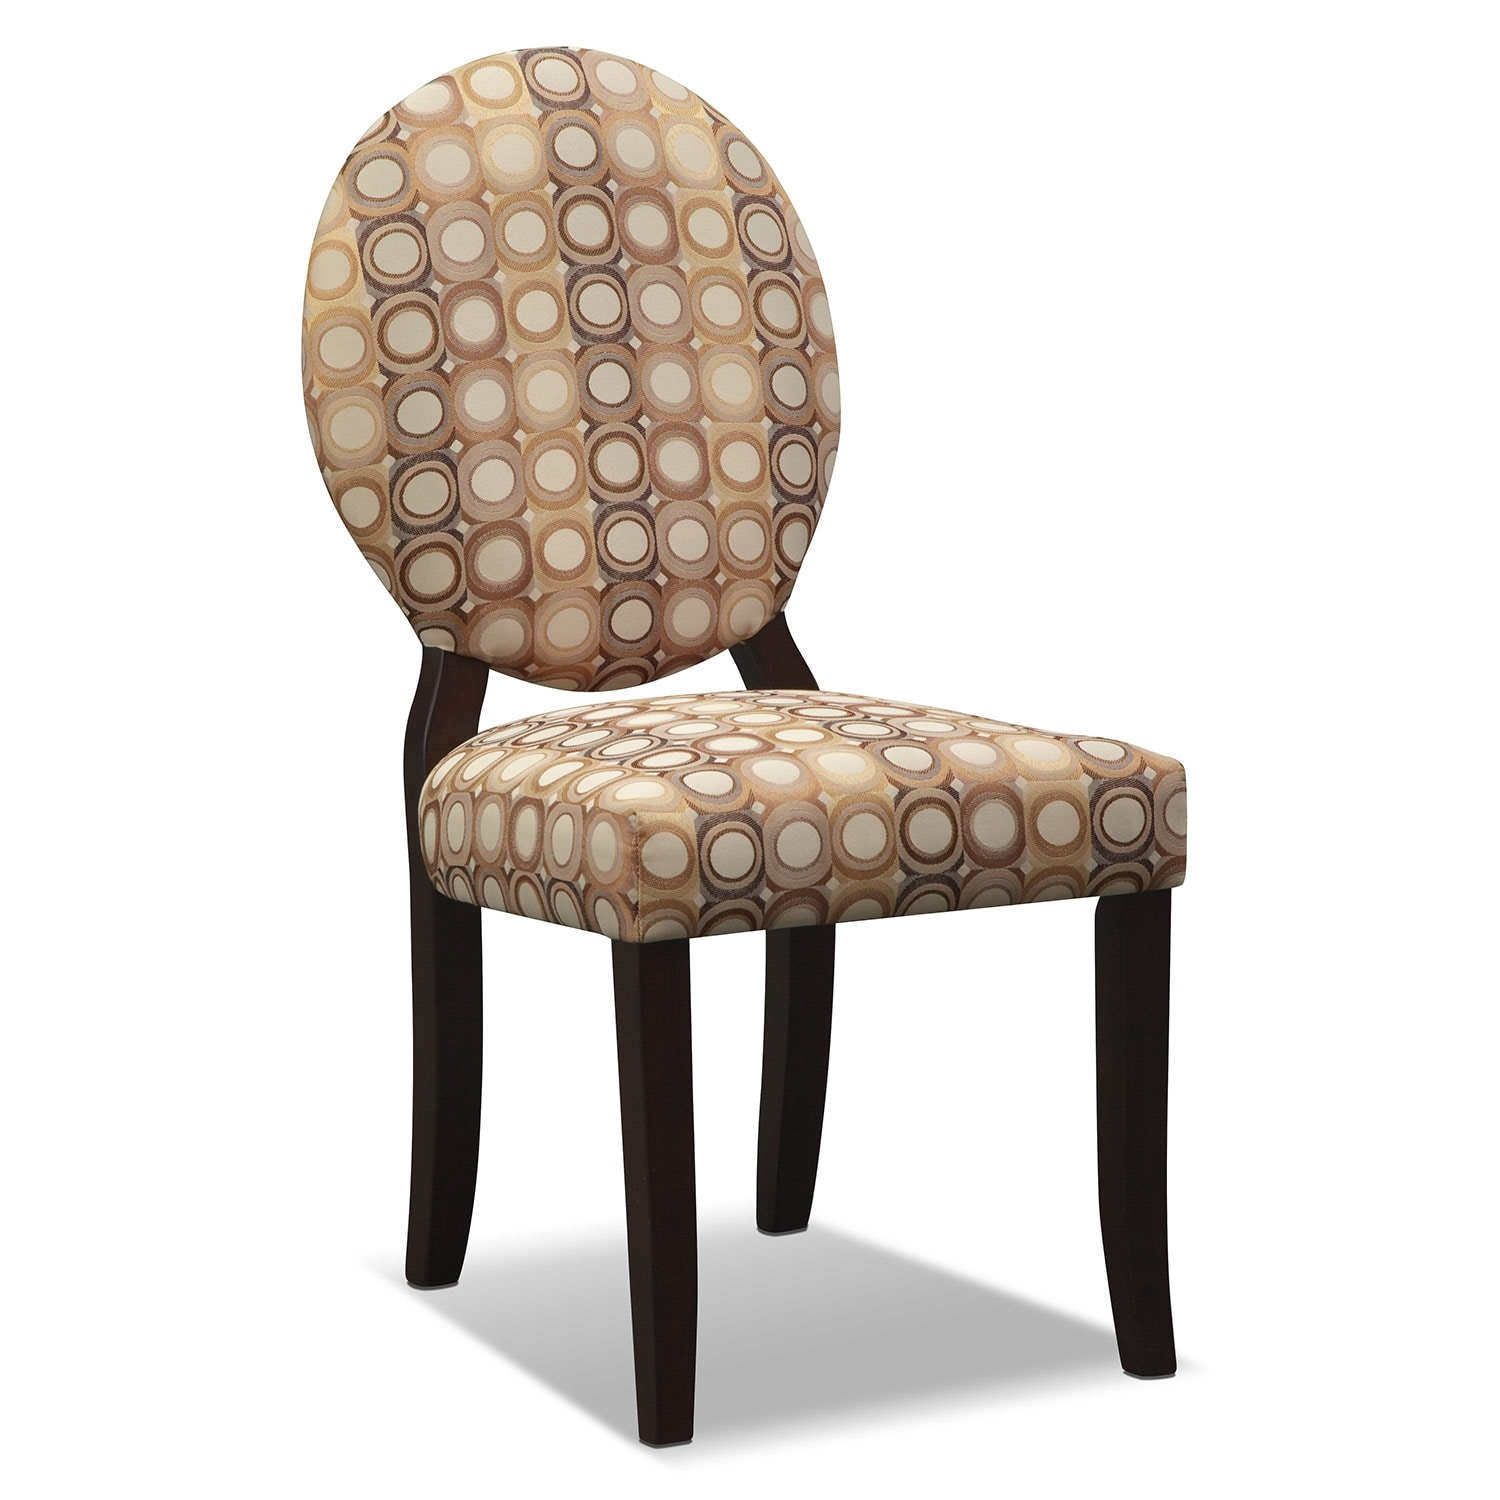 [Cameo Chair]